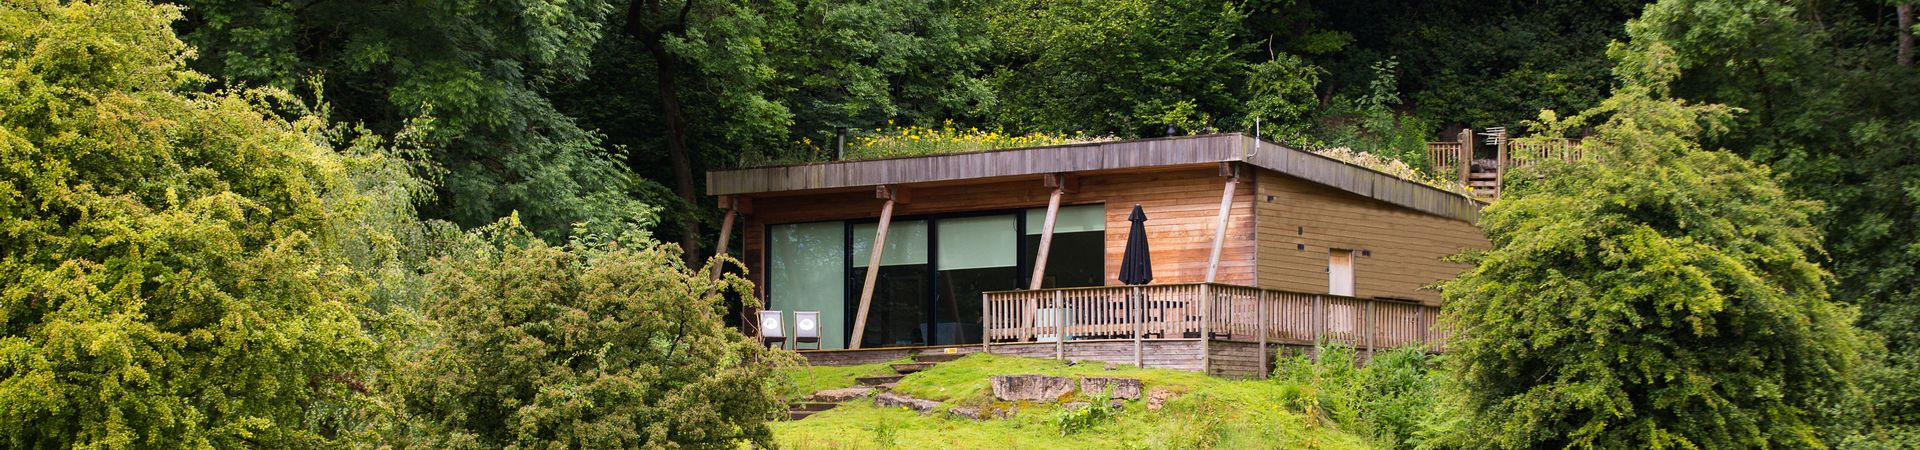 Yorkshire Dales Eco-Lodges